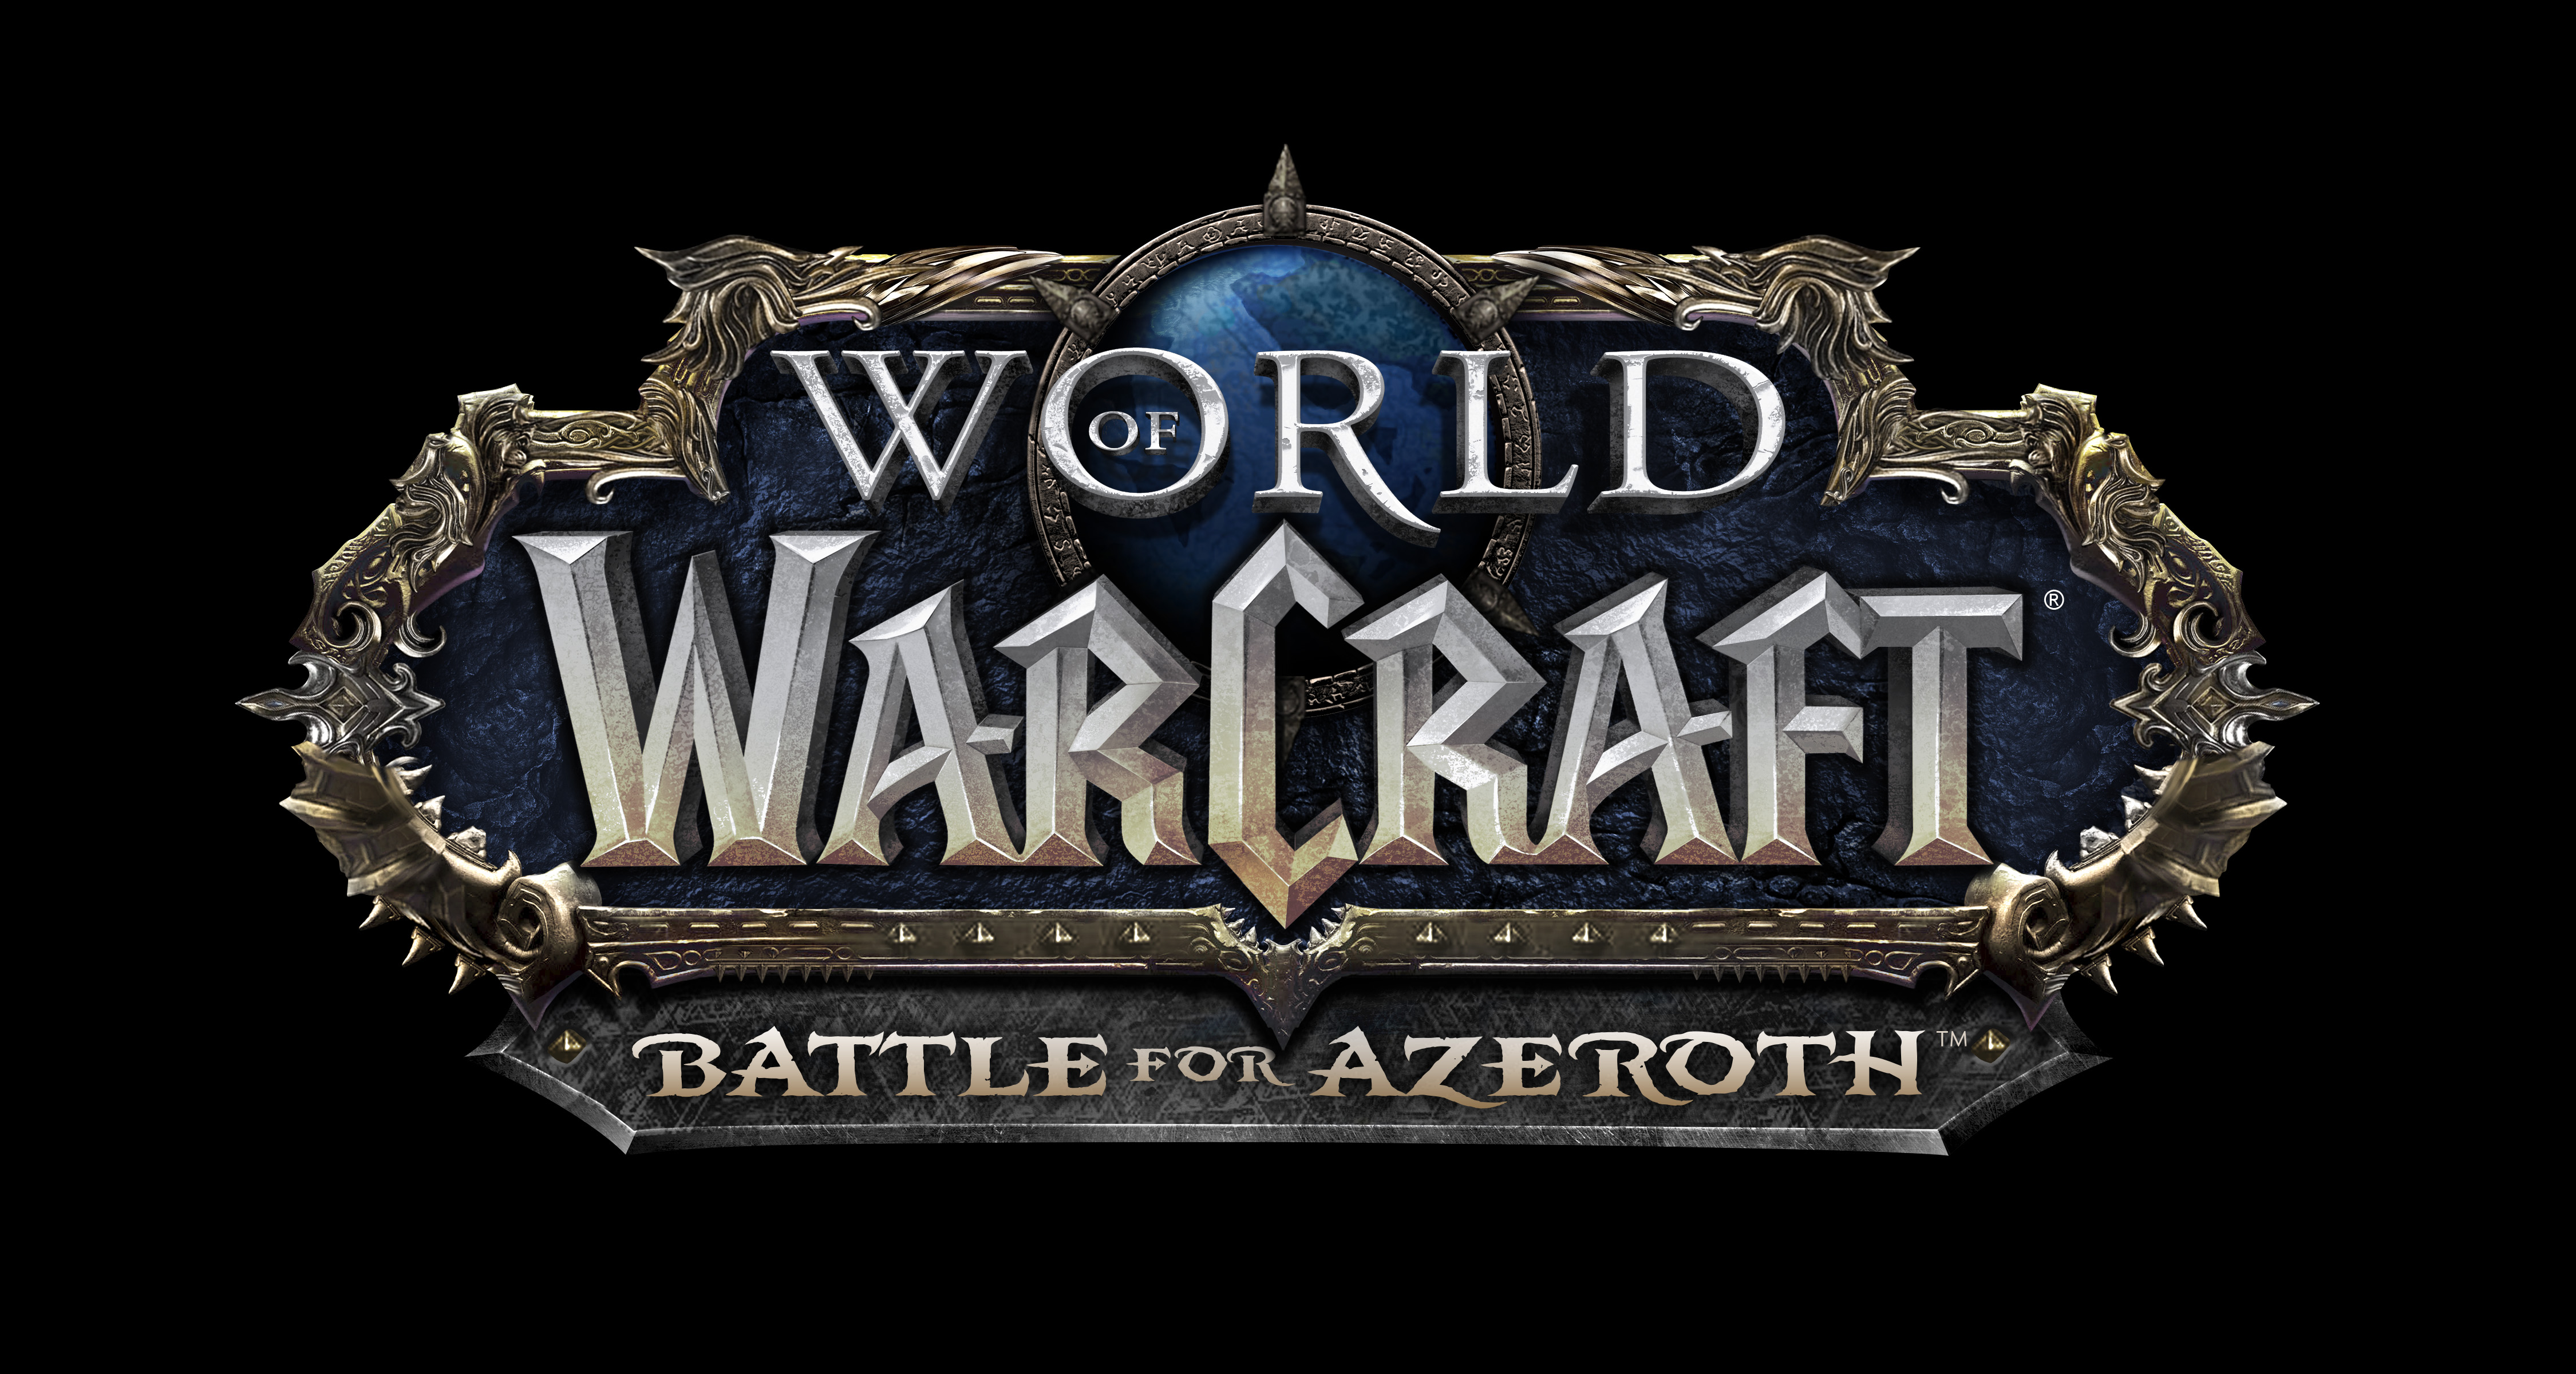 Blizzard Press Center - World of Warcraft: Battle for